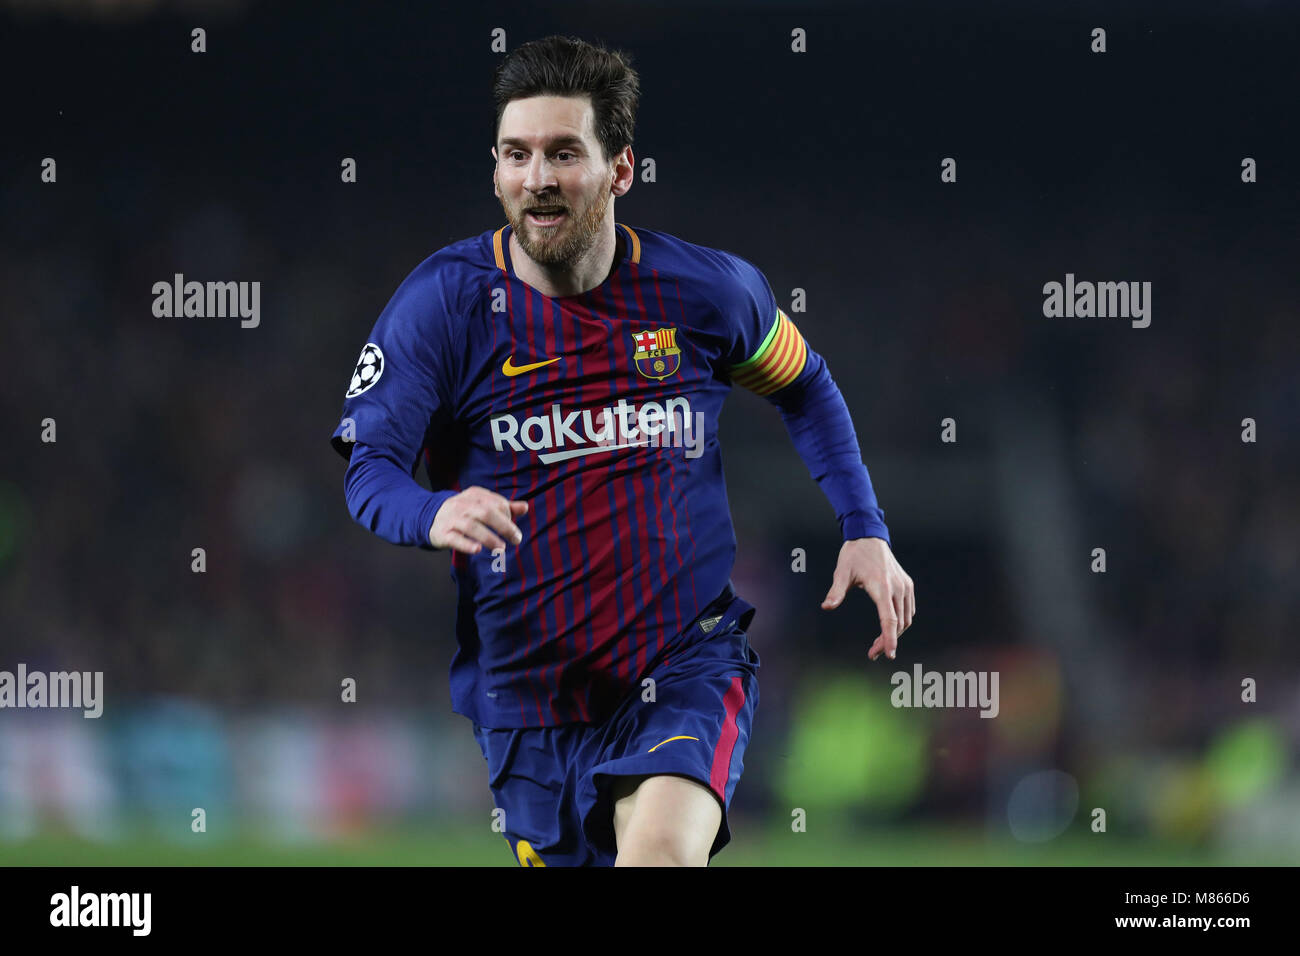 c55e5cc5e9e messi 16 17 barcelona stock photos   messi 16 17 barcelona stock